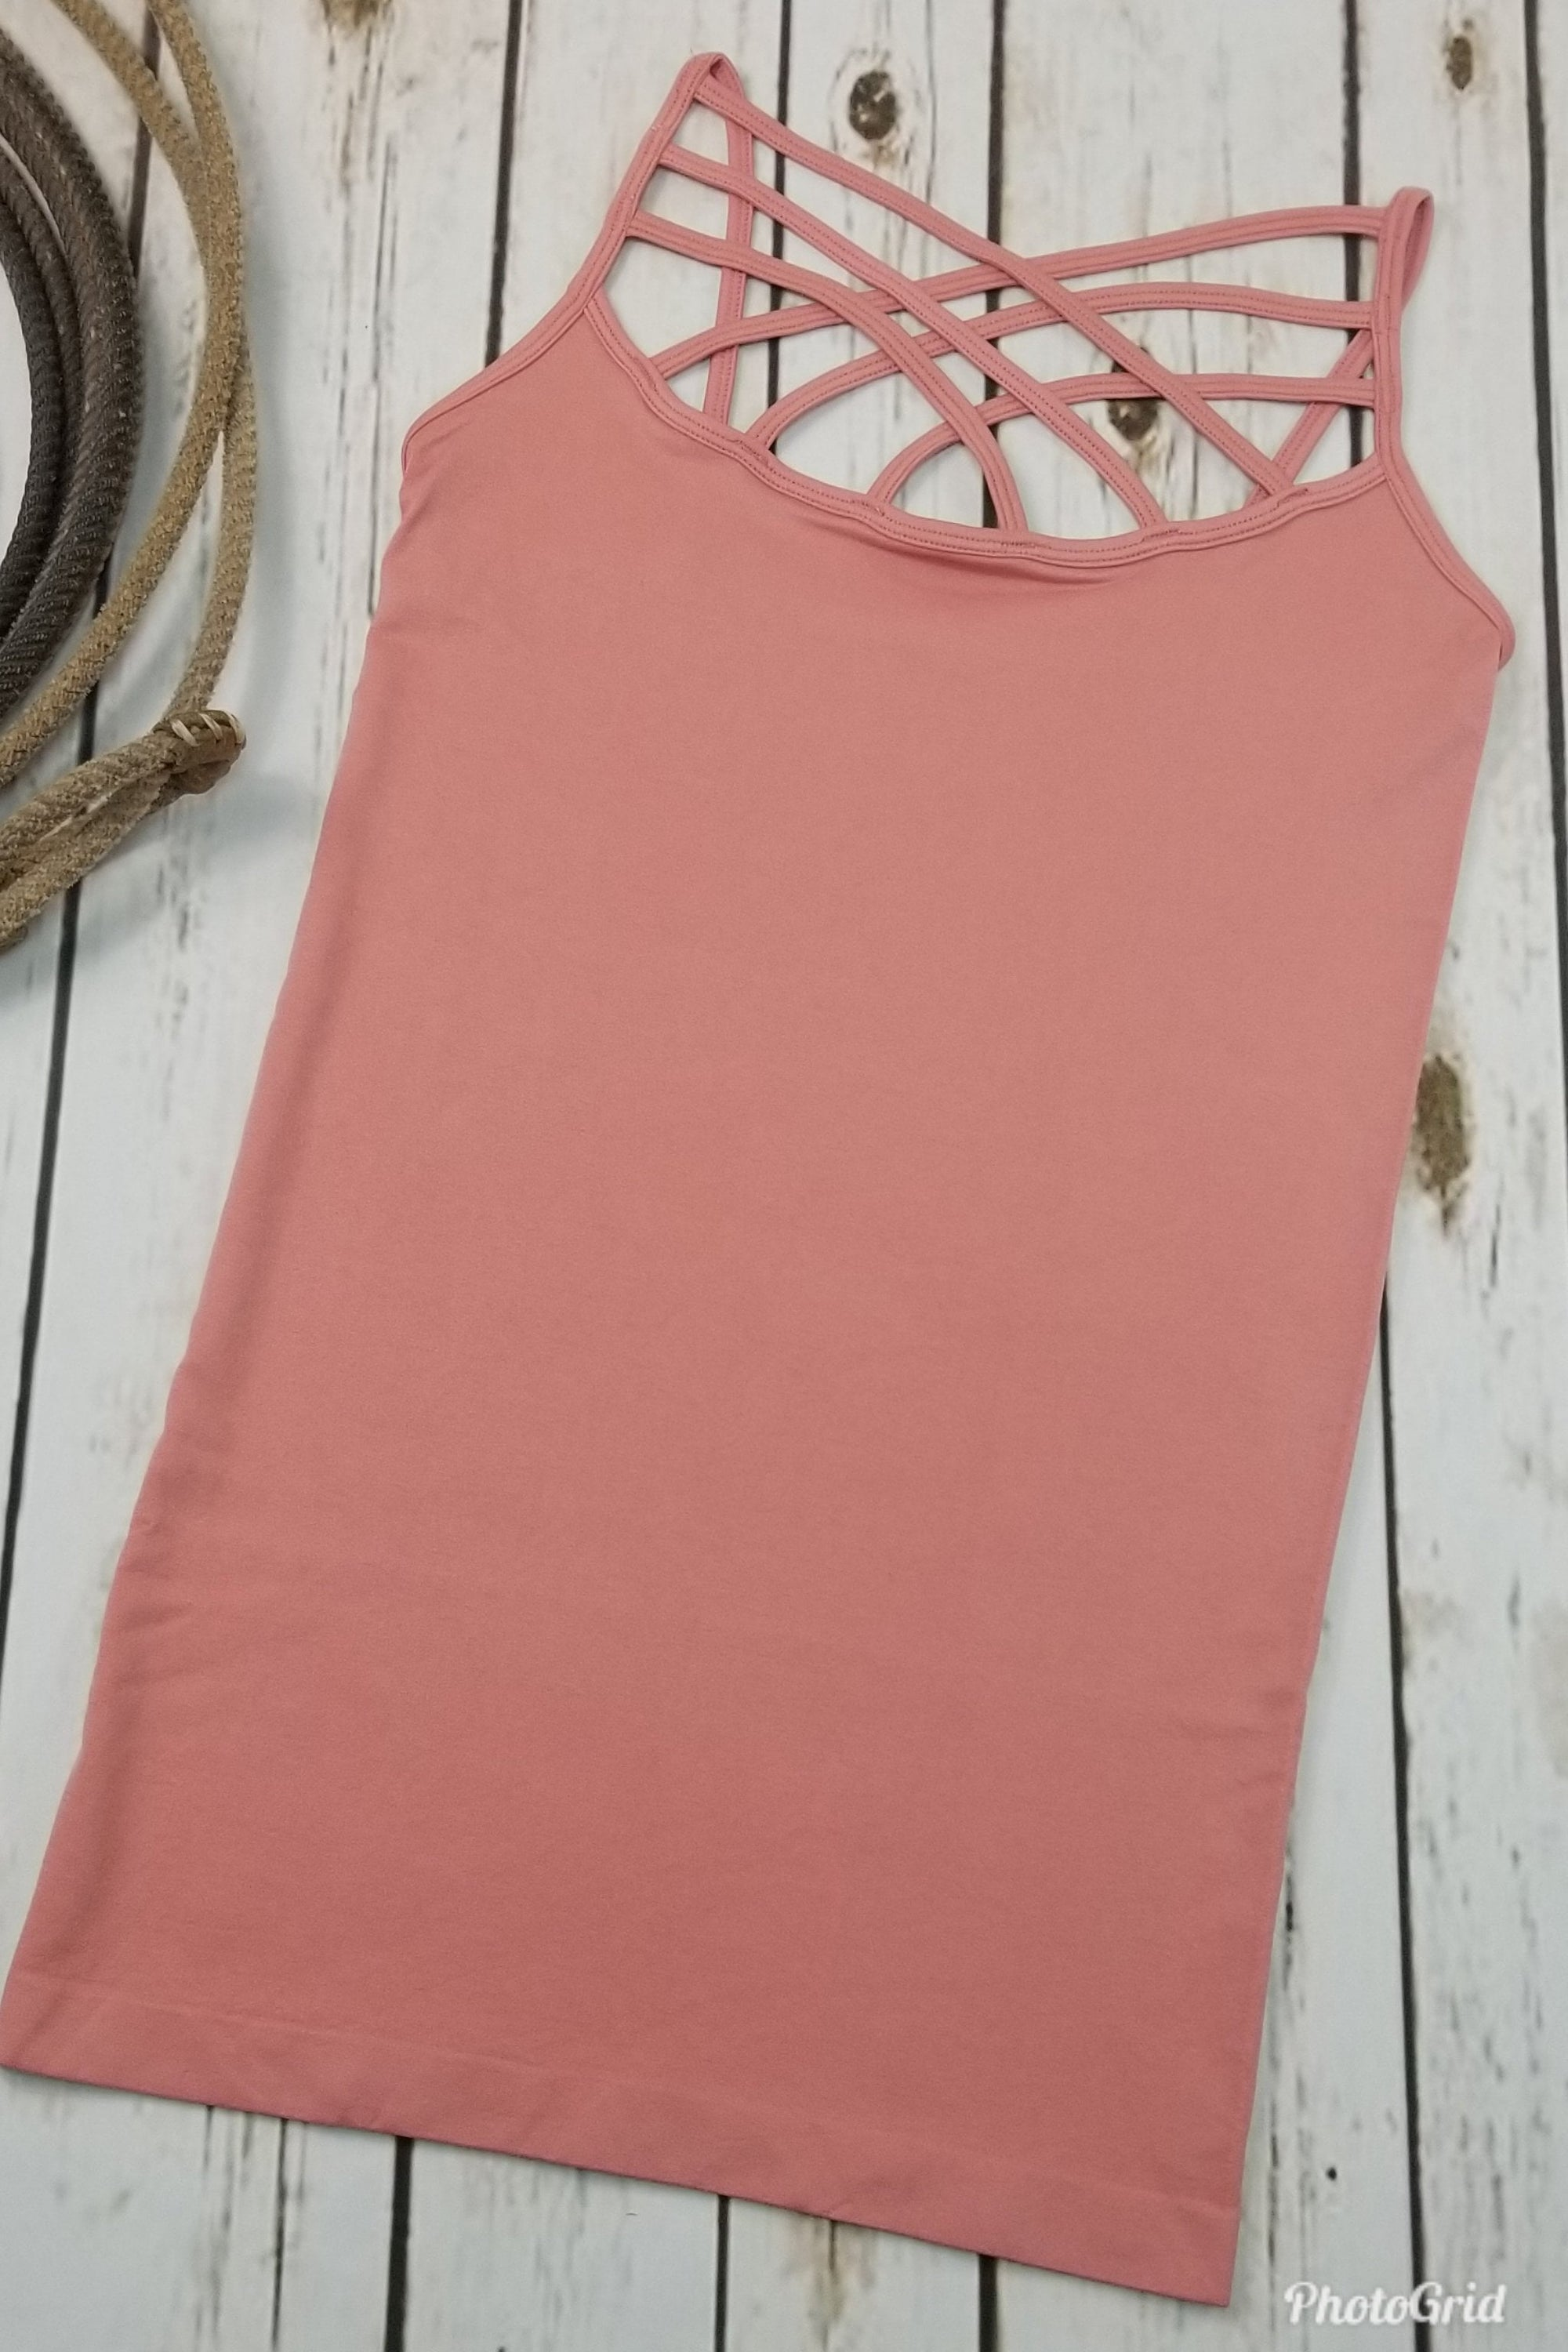 Louise Dusty Rose Round-Neck Criss-Cross Cami (Item #60)